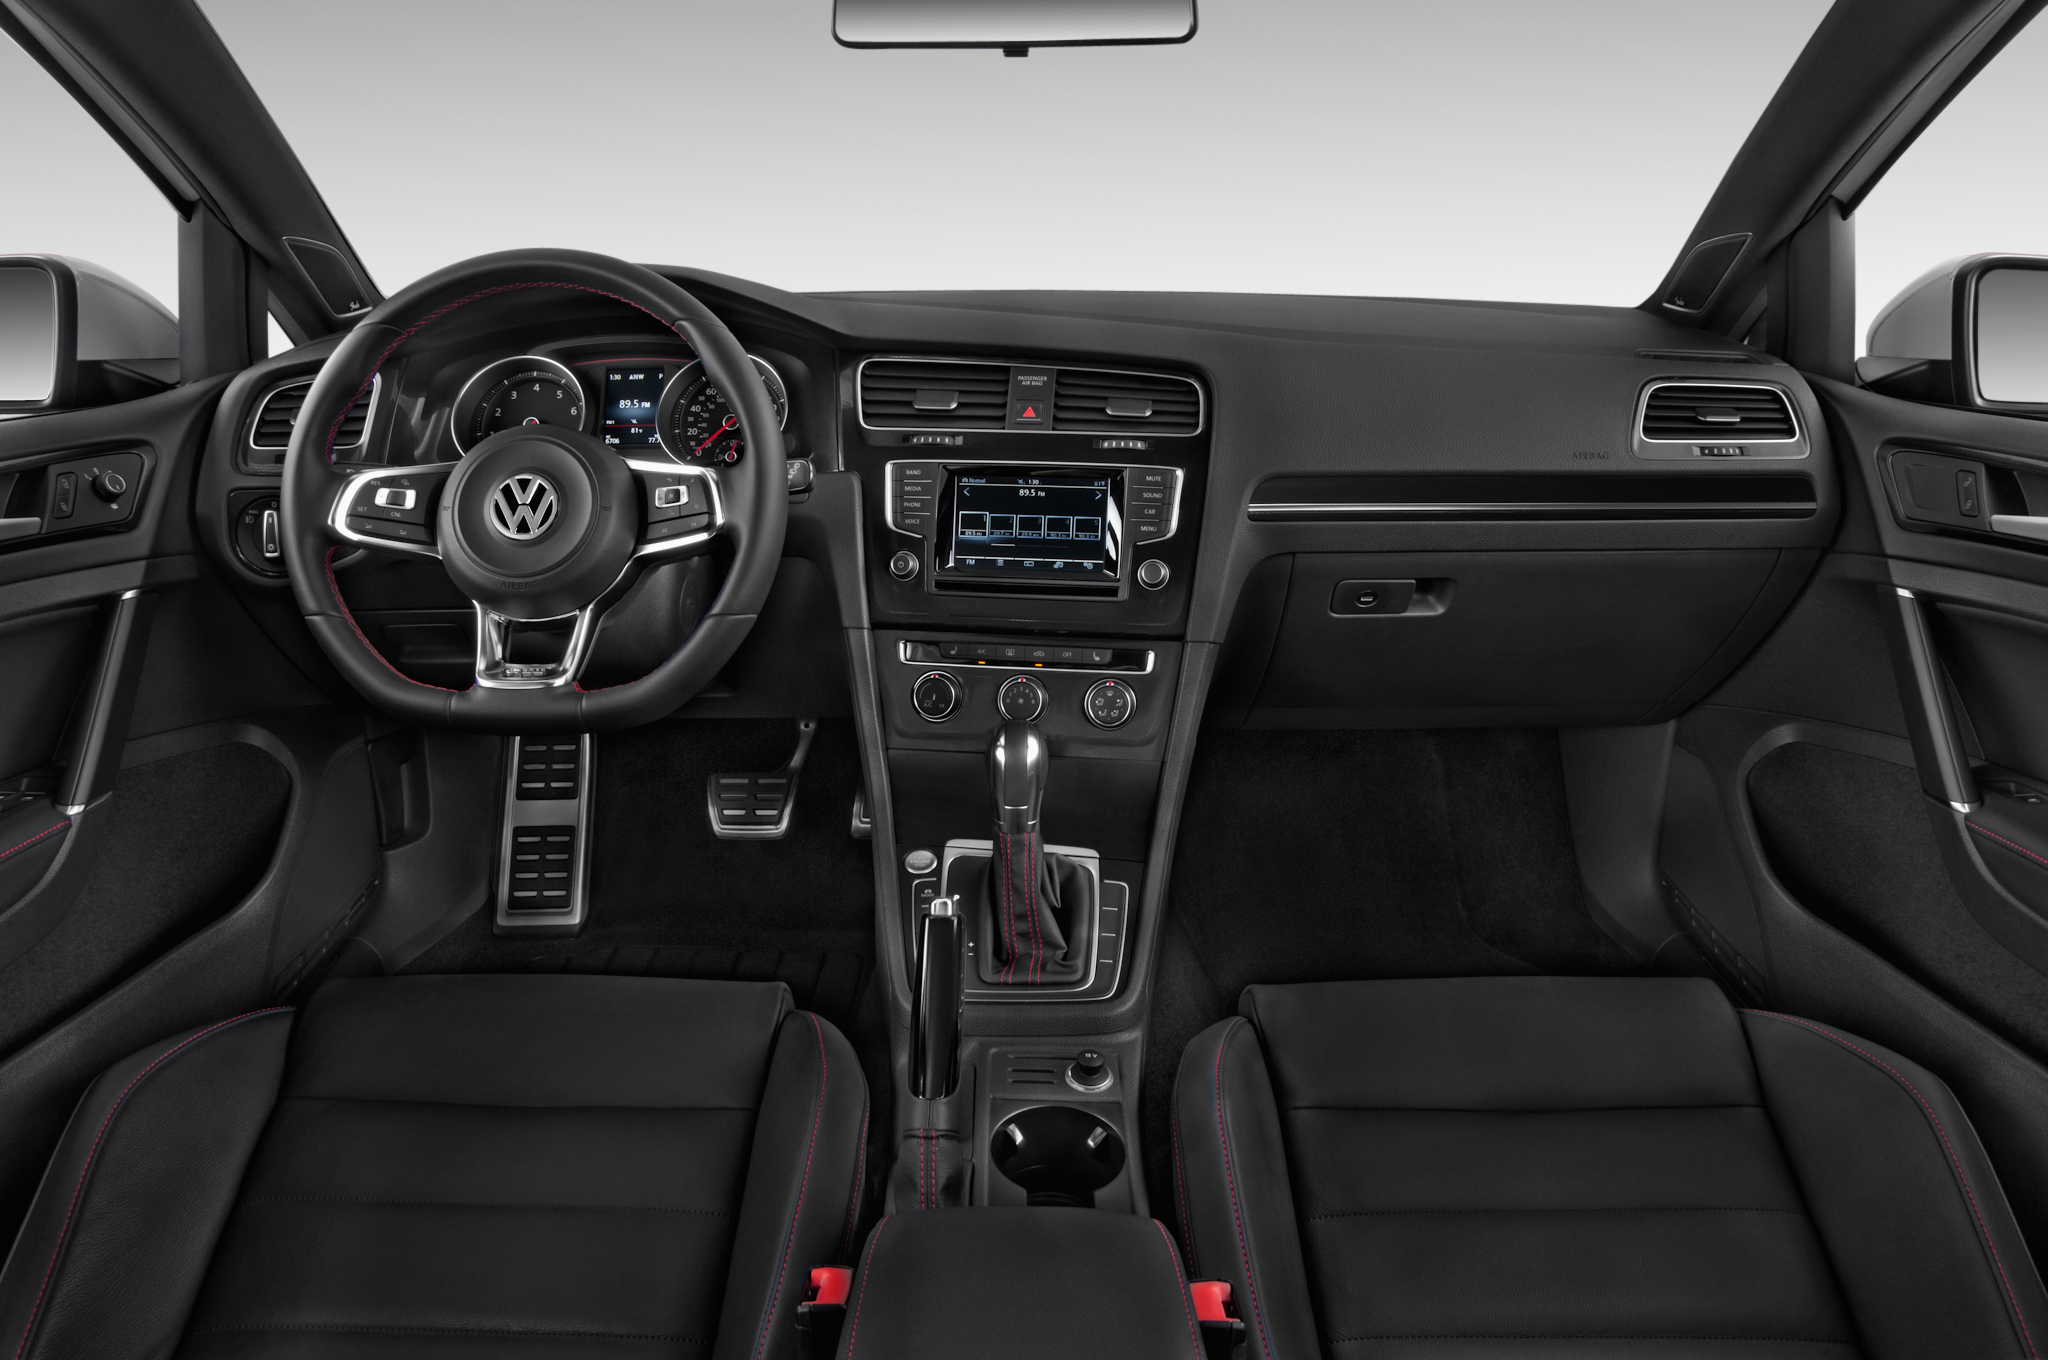 volkswagen golf gti tcr racing car revealed with 326 hp automobile magazine. Black Bedroom Furniture Sets. Home Design Ideas